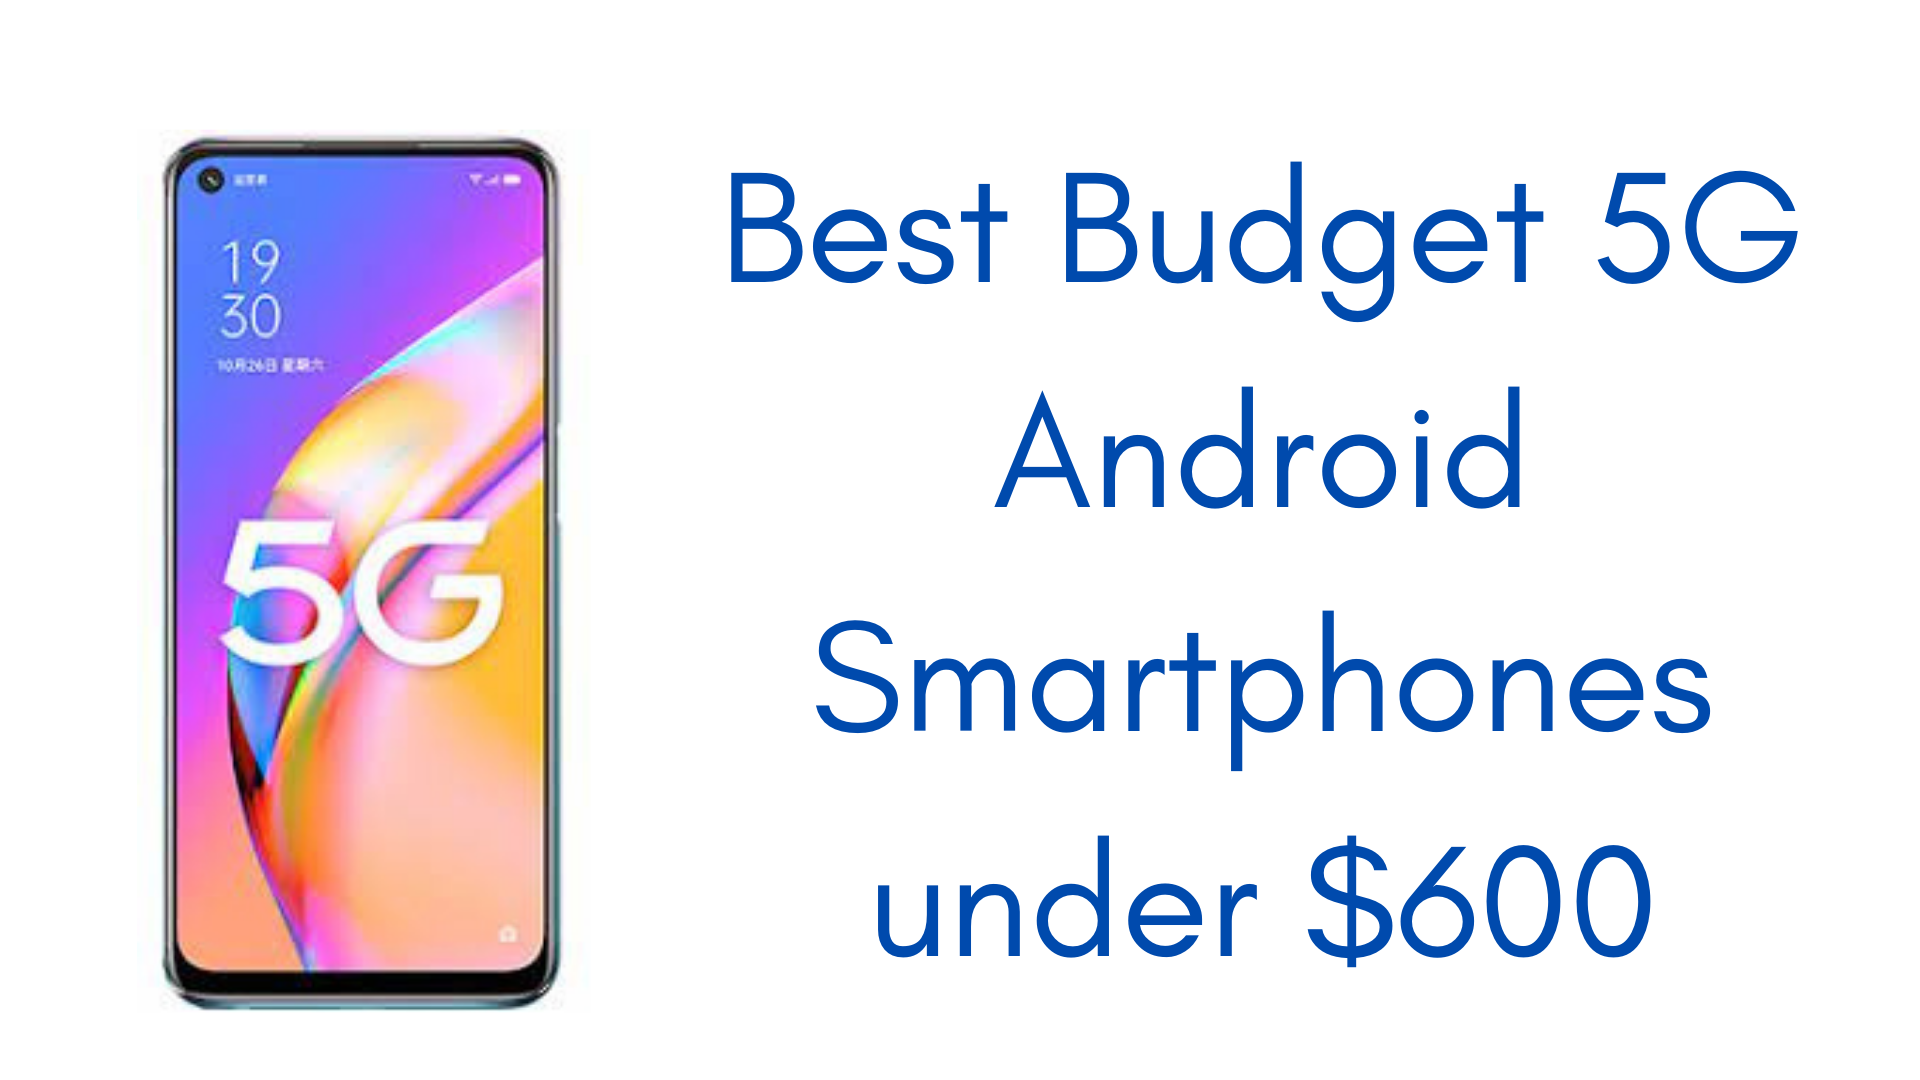 Budget 5G Android Smartphones under $600